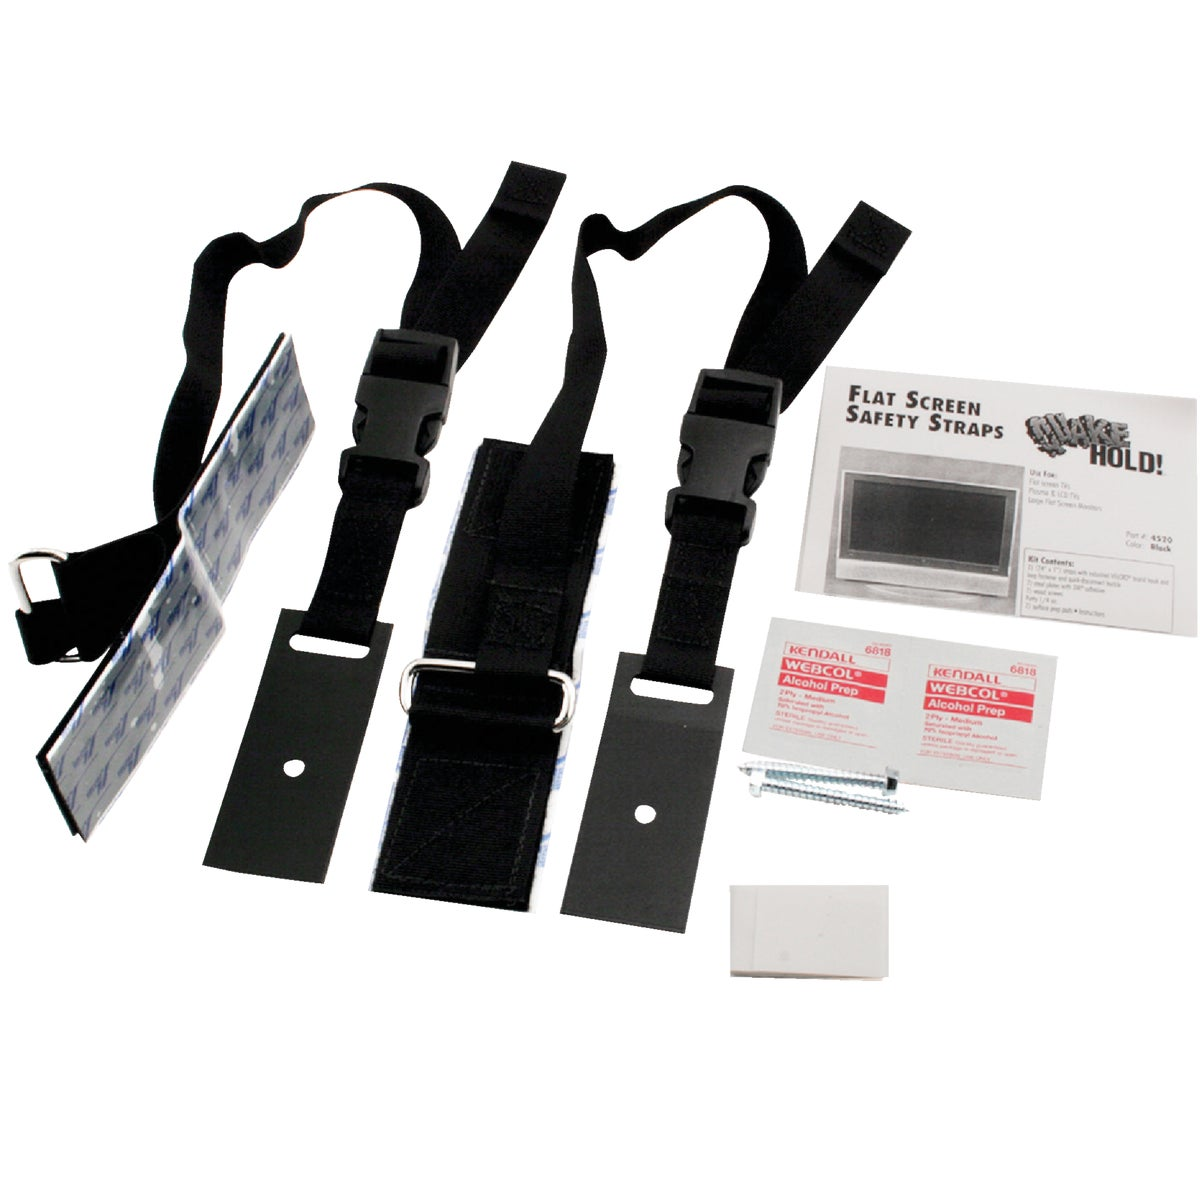 UNIV FLAT SCRN TV STRAP - 4520 by Ready America Inc